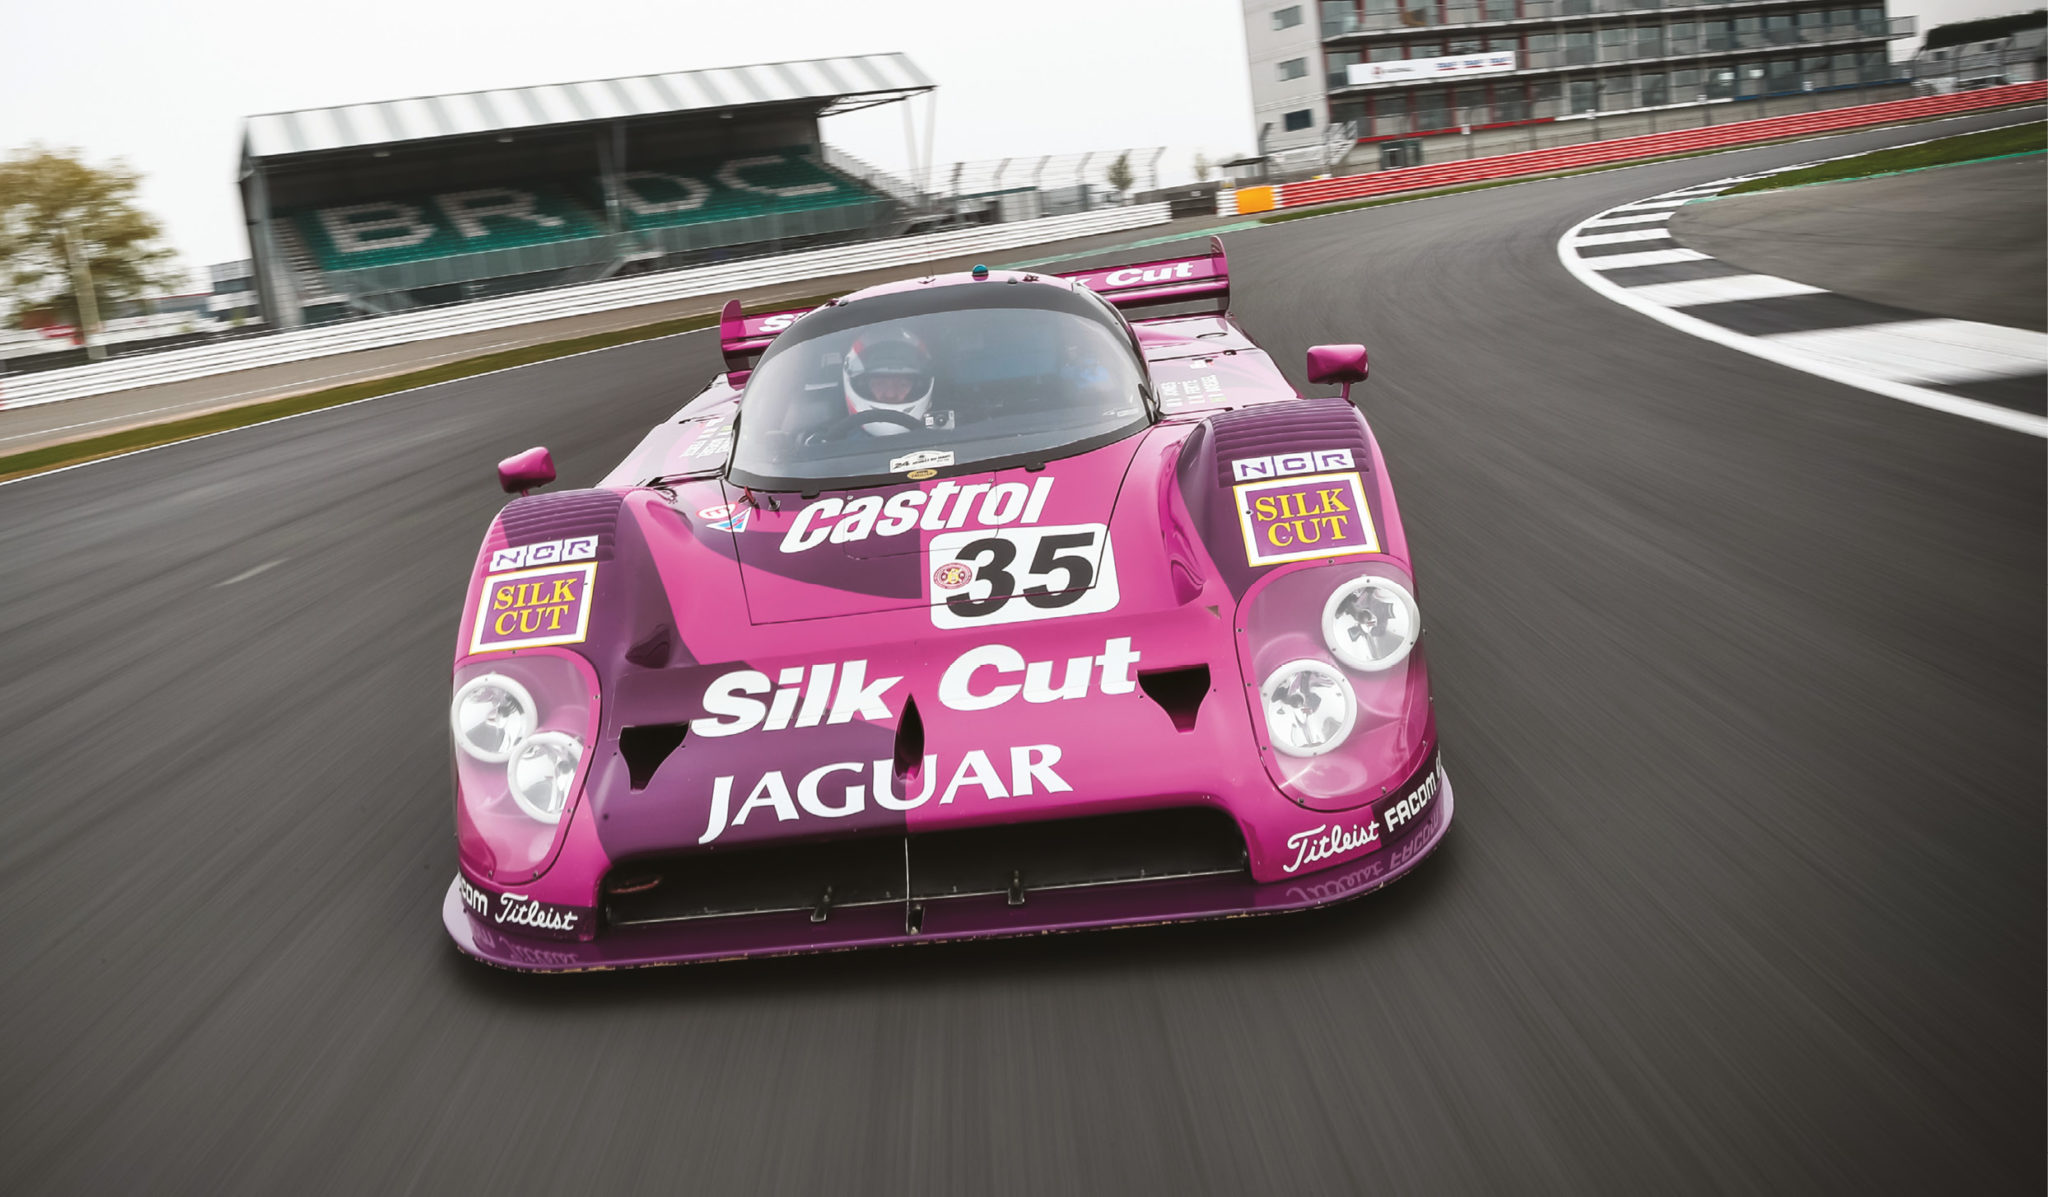 The Le Mans-spec Jaguars ran low rear wings and trimmed-back aero to cut through the air, which made acceleration brutal